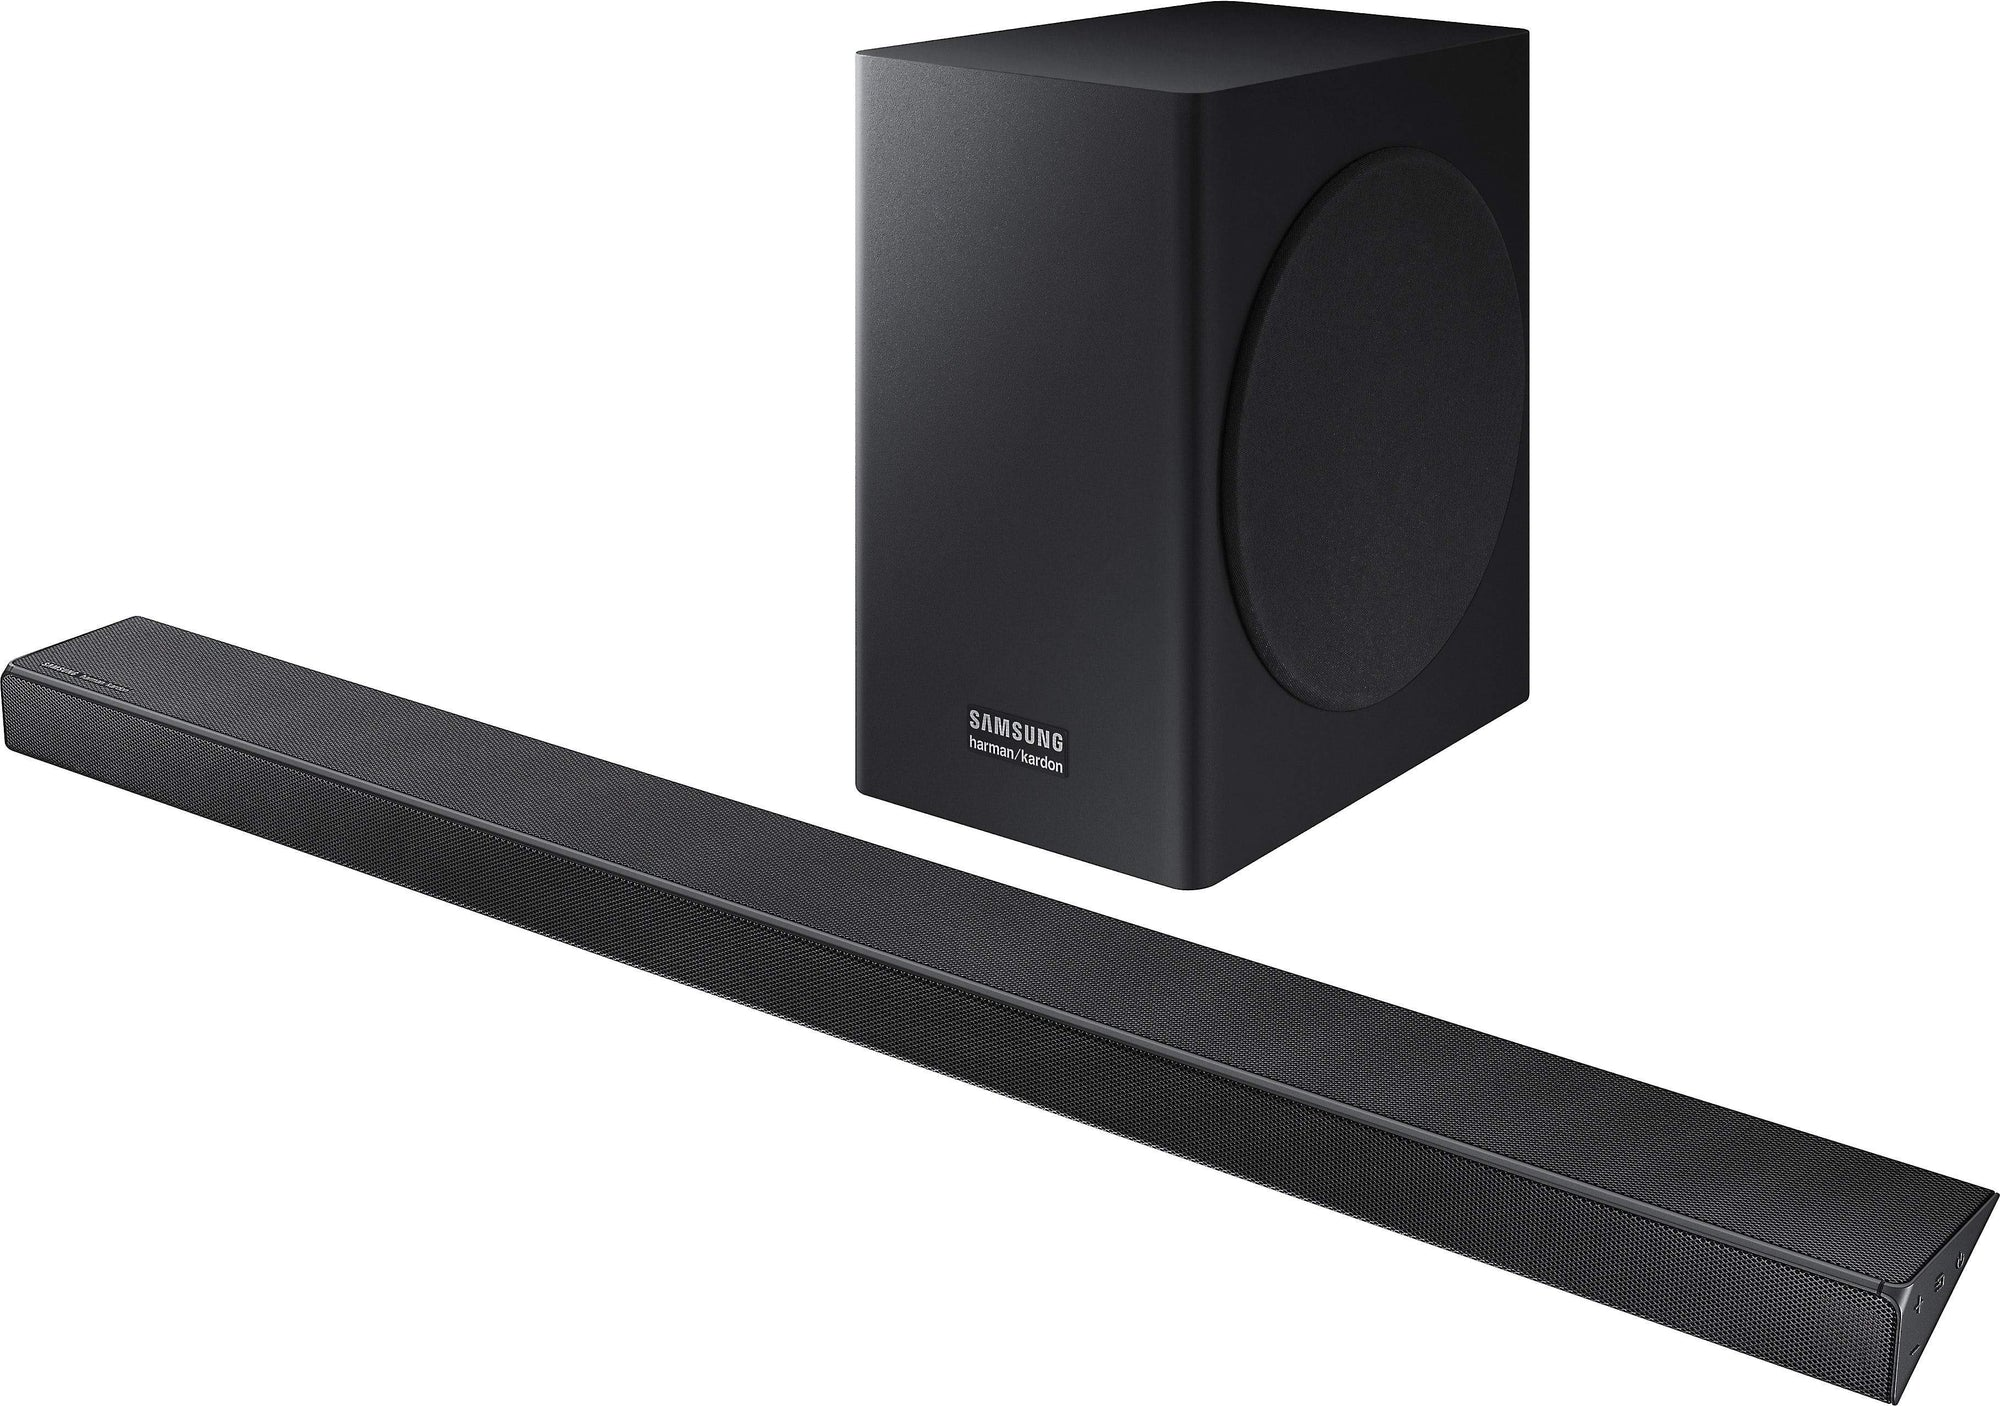 Samsung Harman Kardon 5.1Ch 360W Soundbar with Acoustic Beam